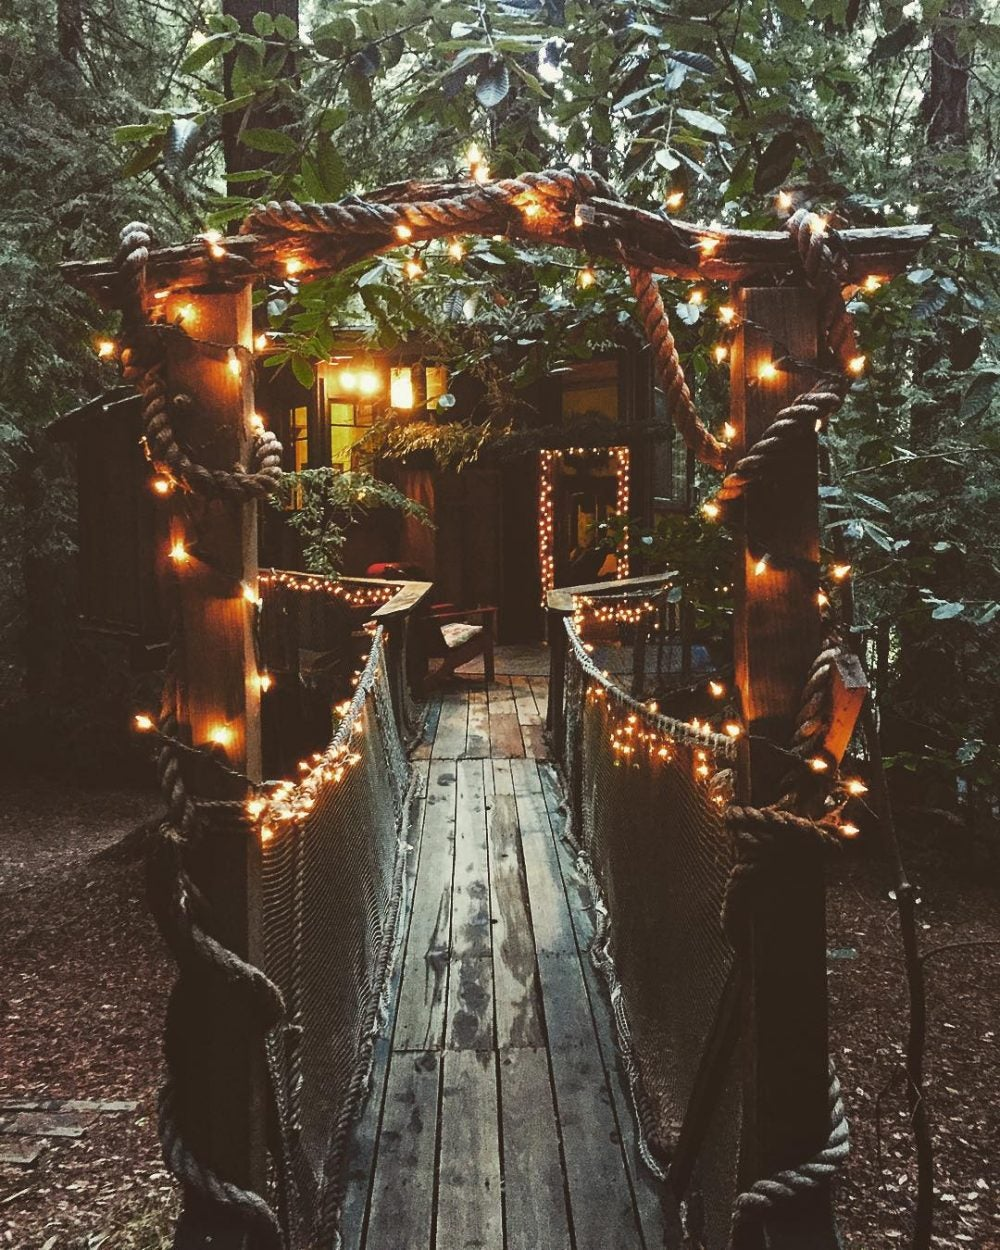 lights strung through trees and over a bridge leading to treehouse